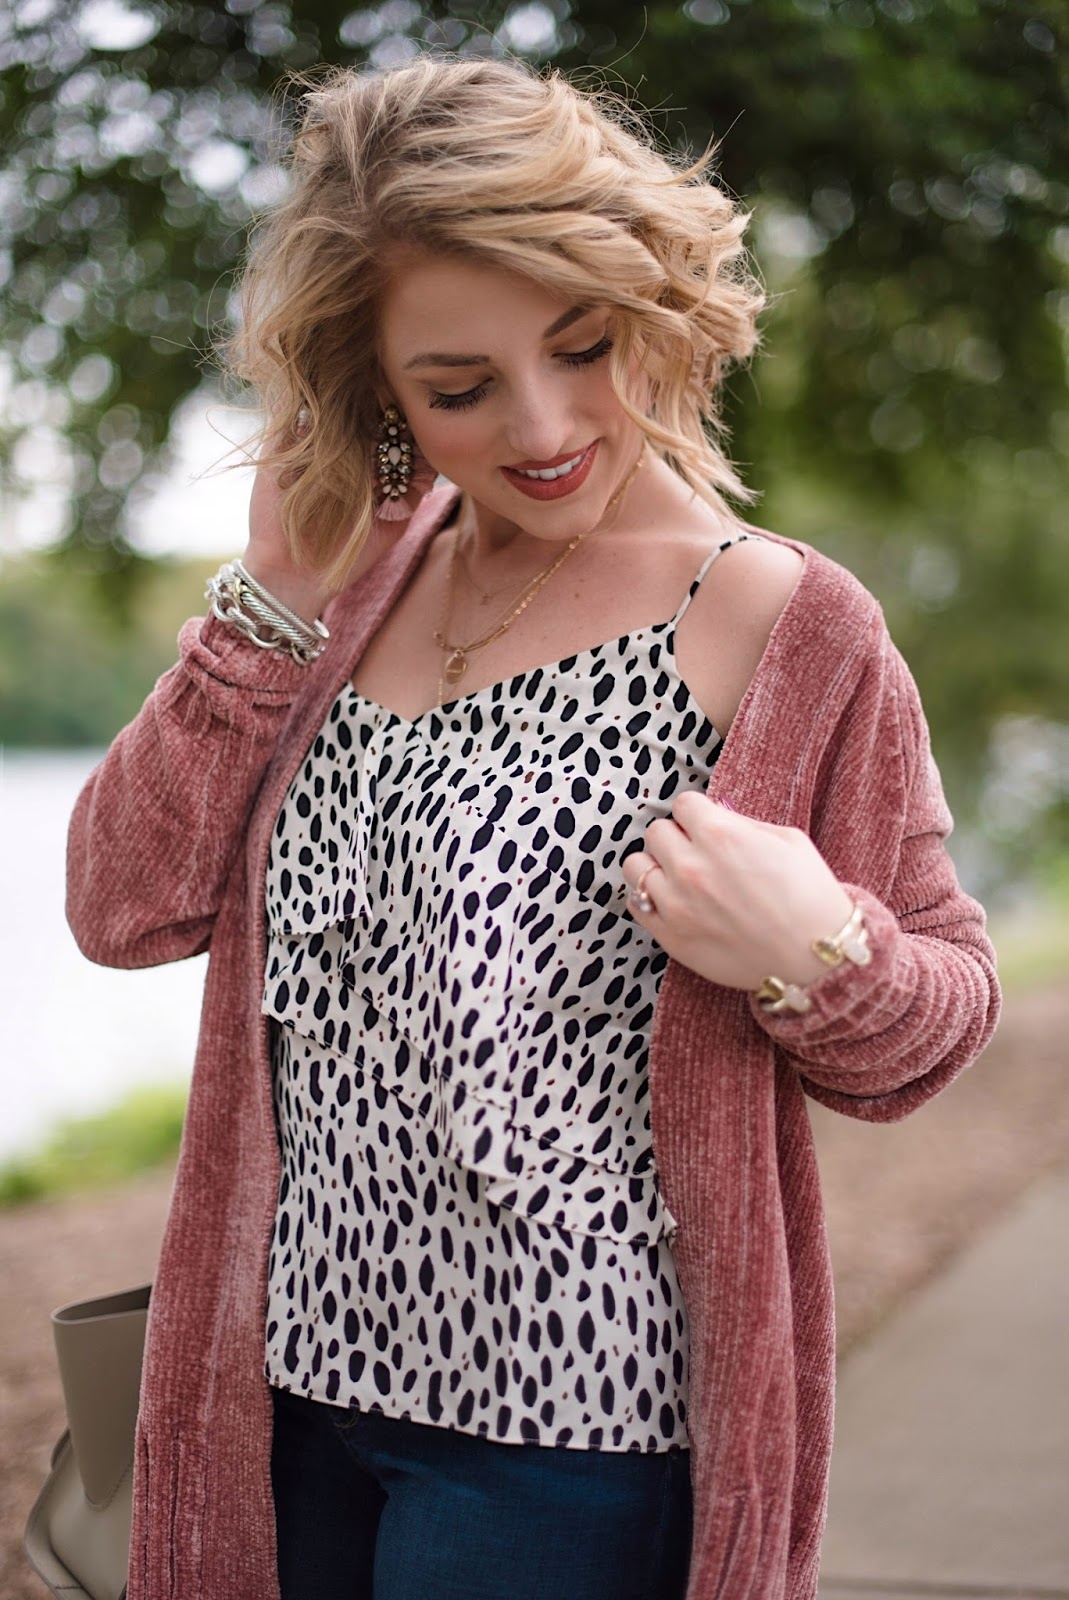 J.Crew Leopard Ruffle Cami - Something Delightful Blog